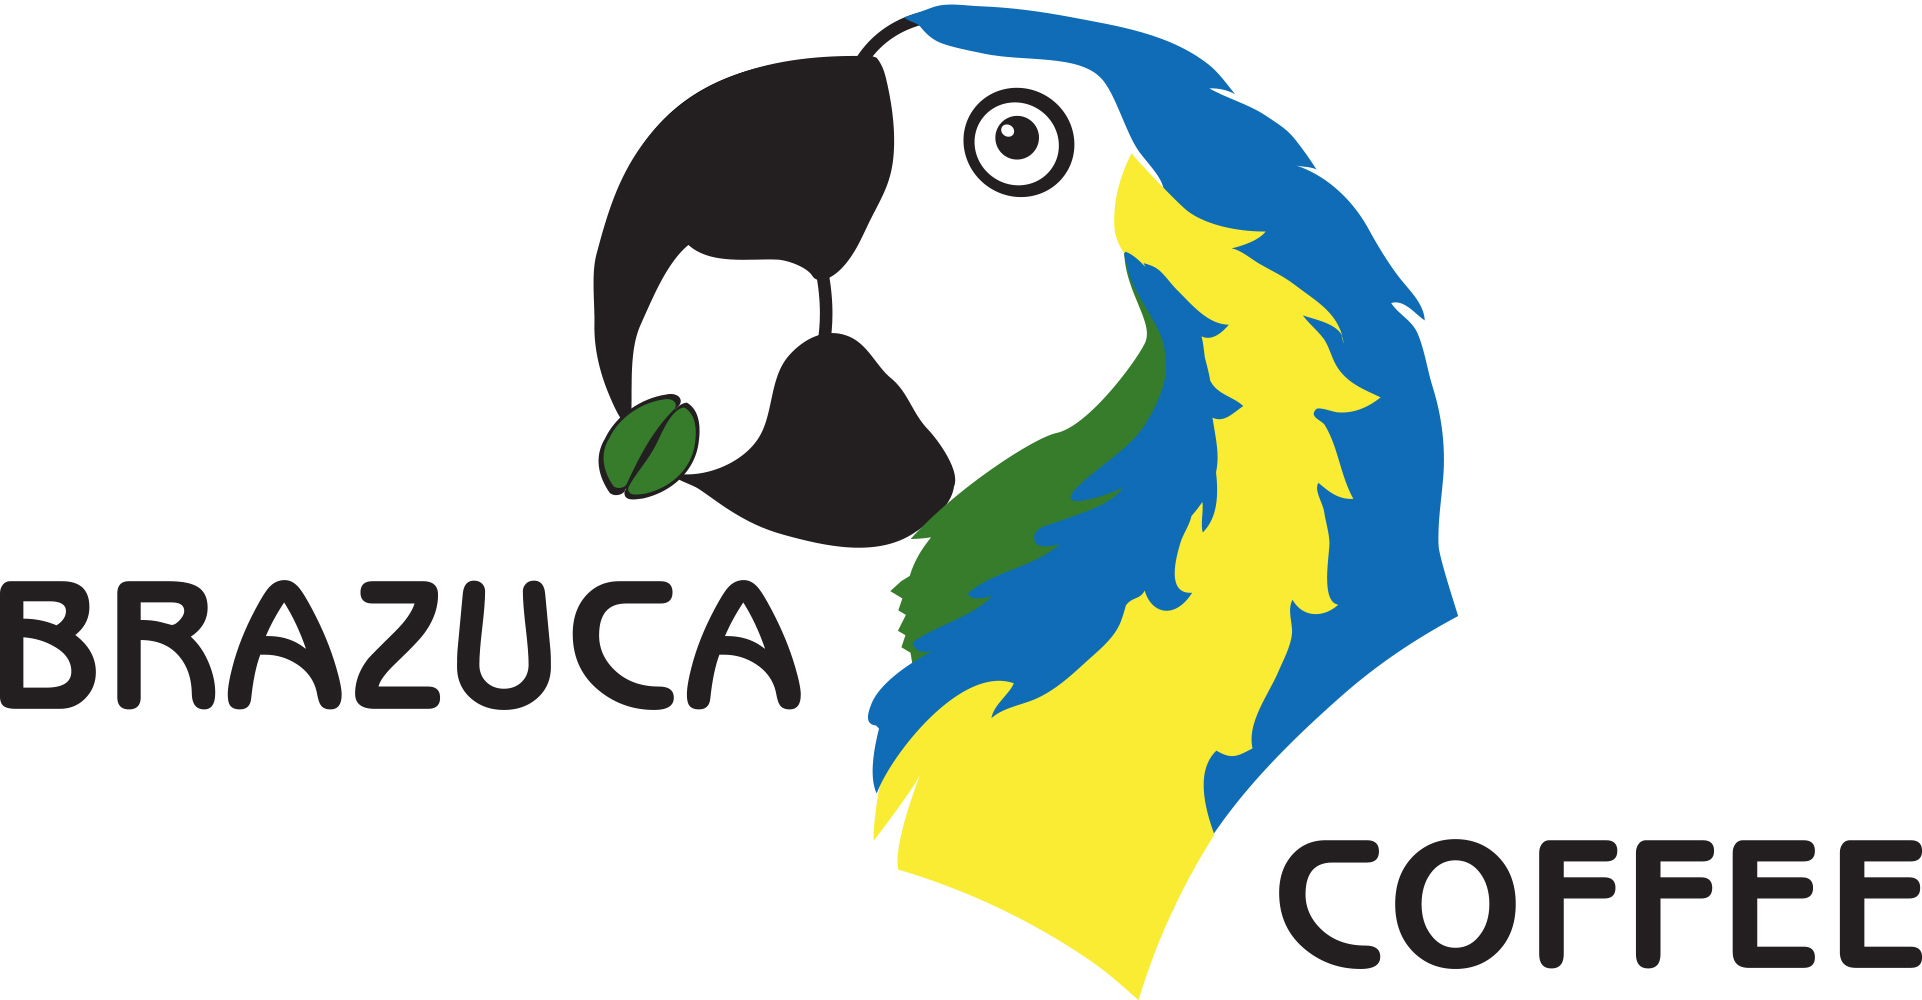 Brazuca Coffee_logo_2014 kleur definitief (2015_12_27 20_14_46 UTC) (1)